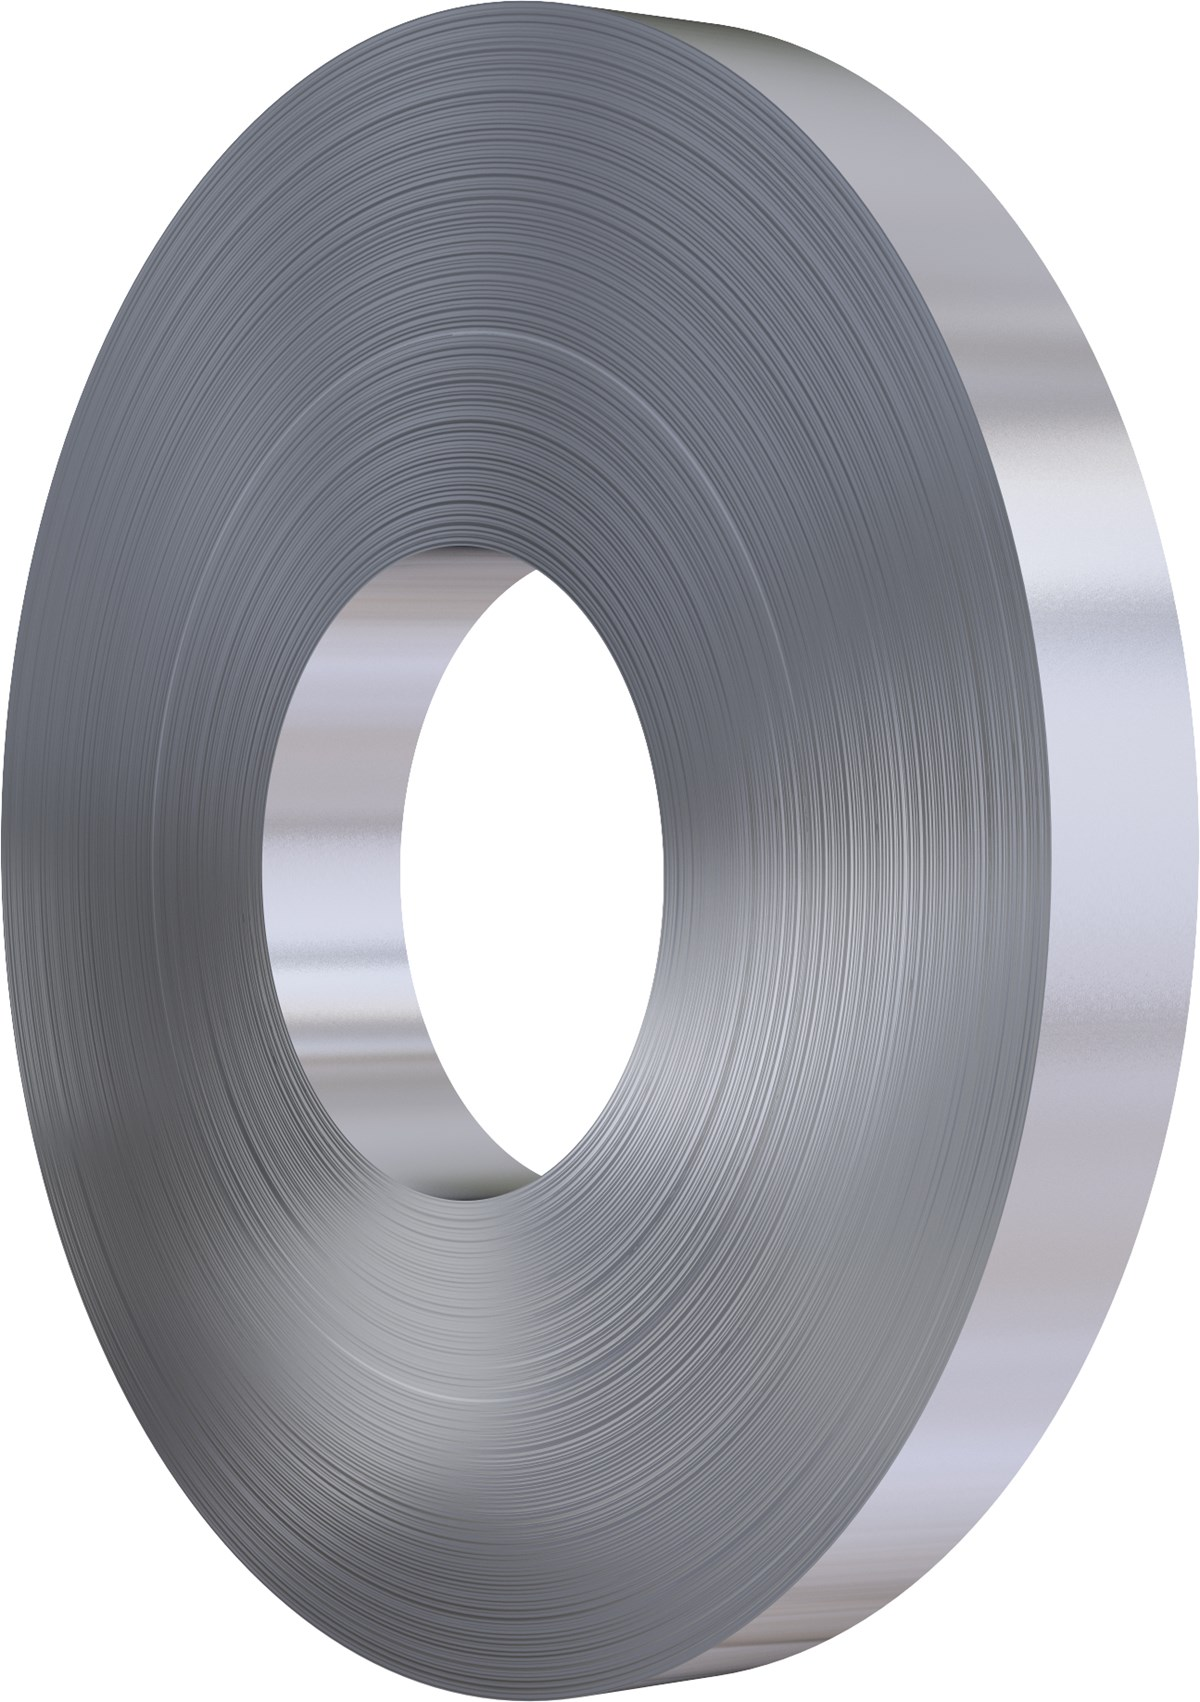 Spring steel in stainless steels and nickel alloys ... Steel